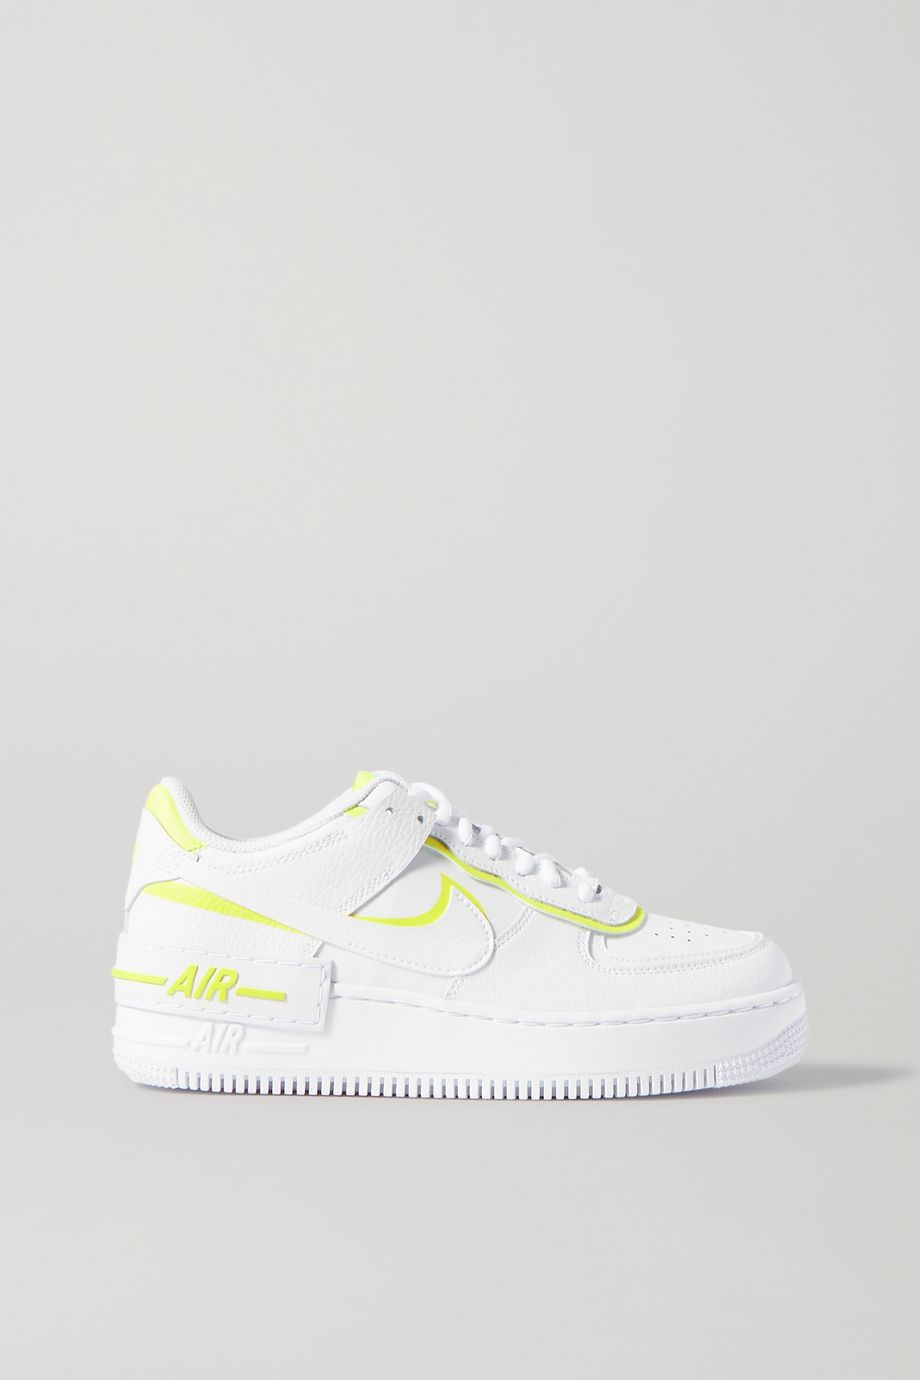 Nike Air Force 1 Shadow neon leather sneakers